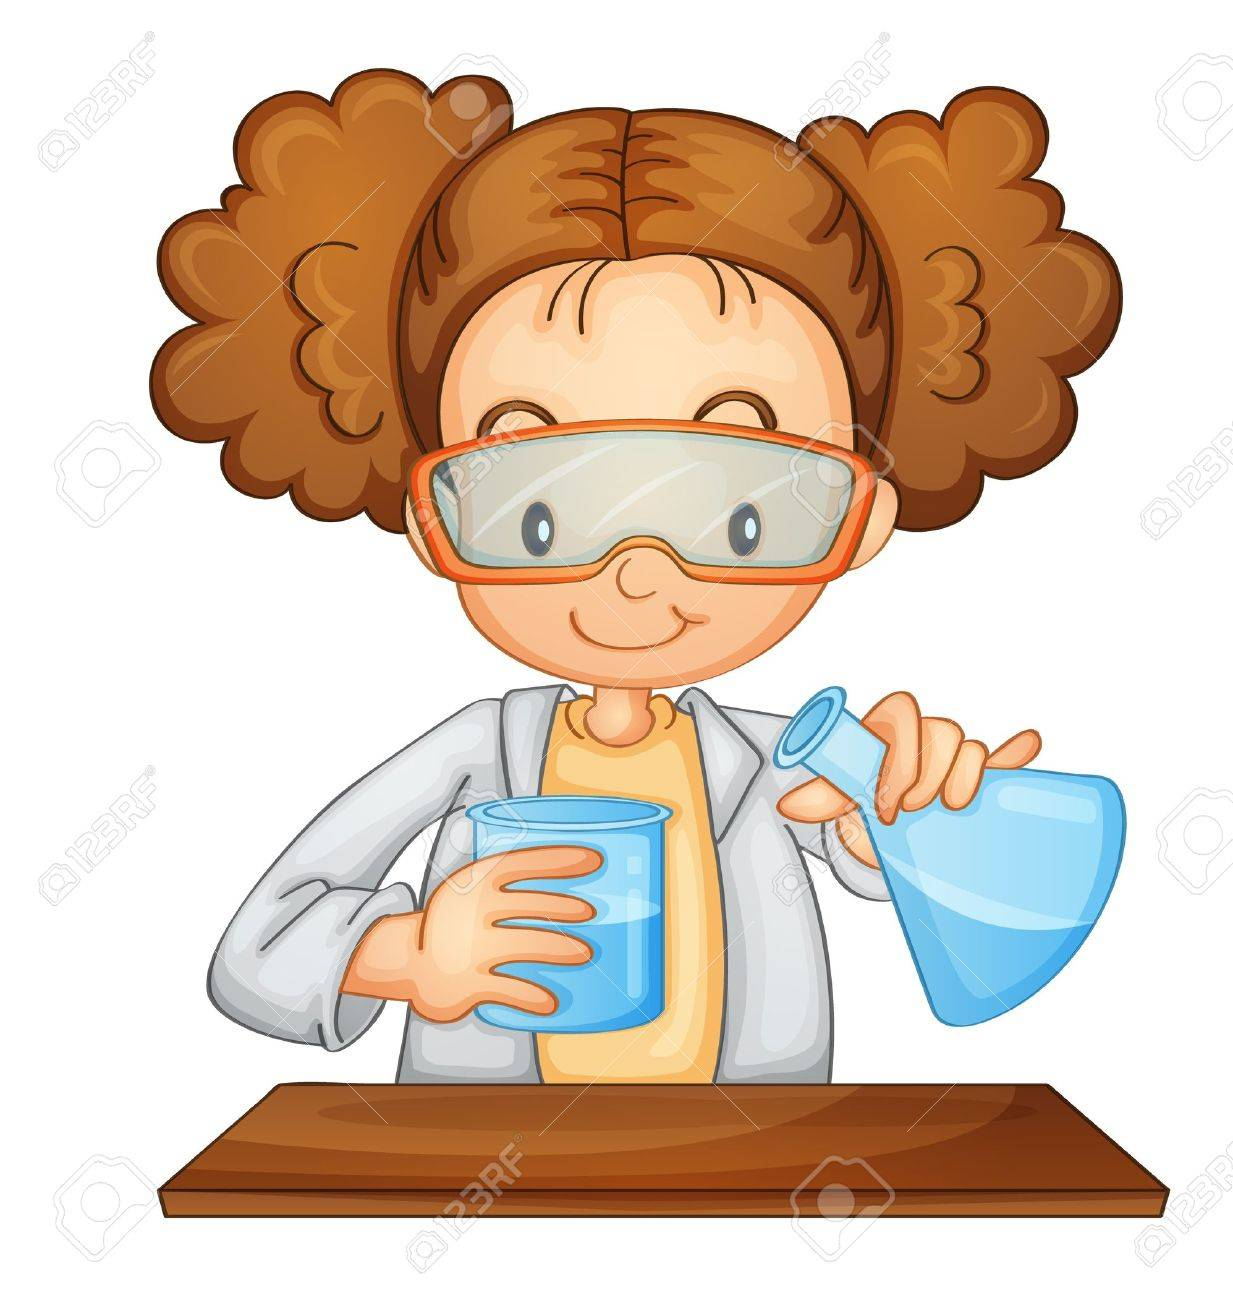 Illustration of a young scientist.